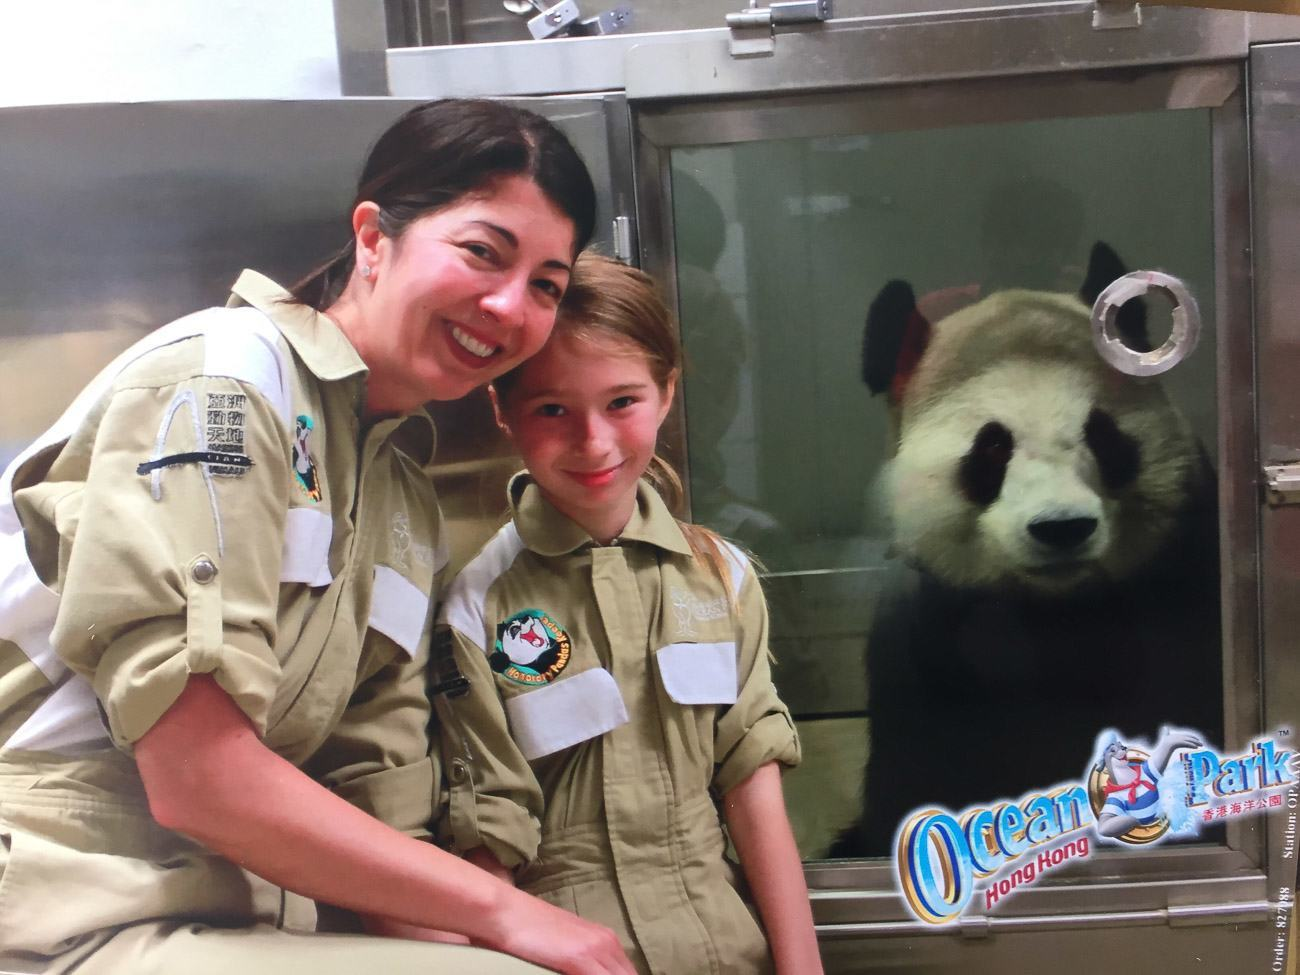 Participants in Ocean Park Hong Kong's panda keeper for a day get face-to-face with a giant panda!